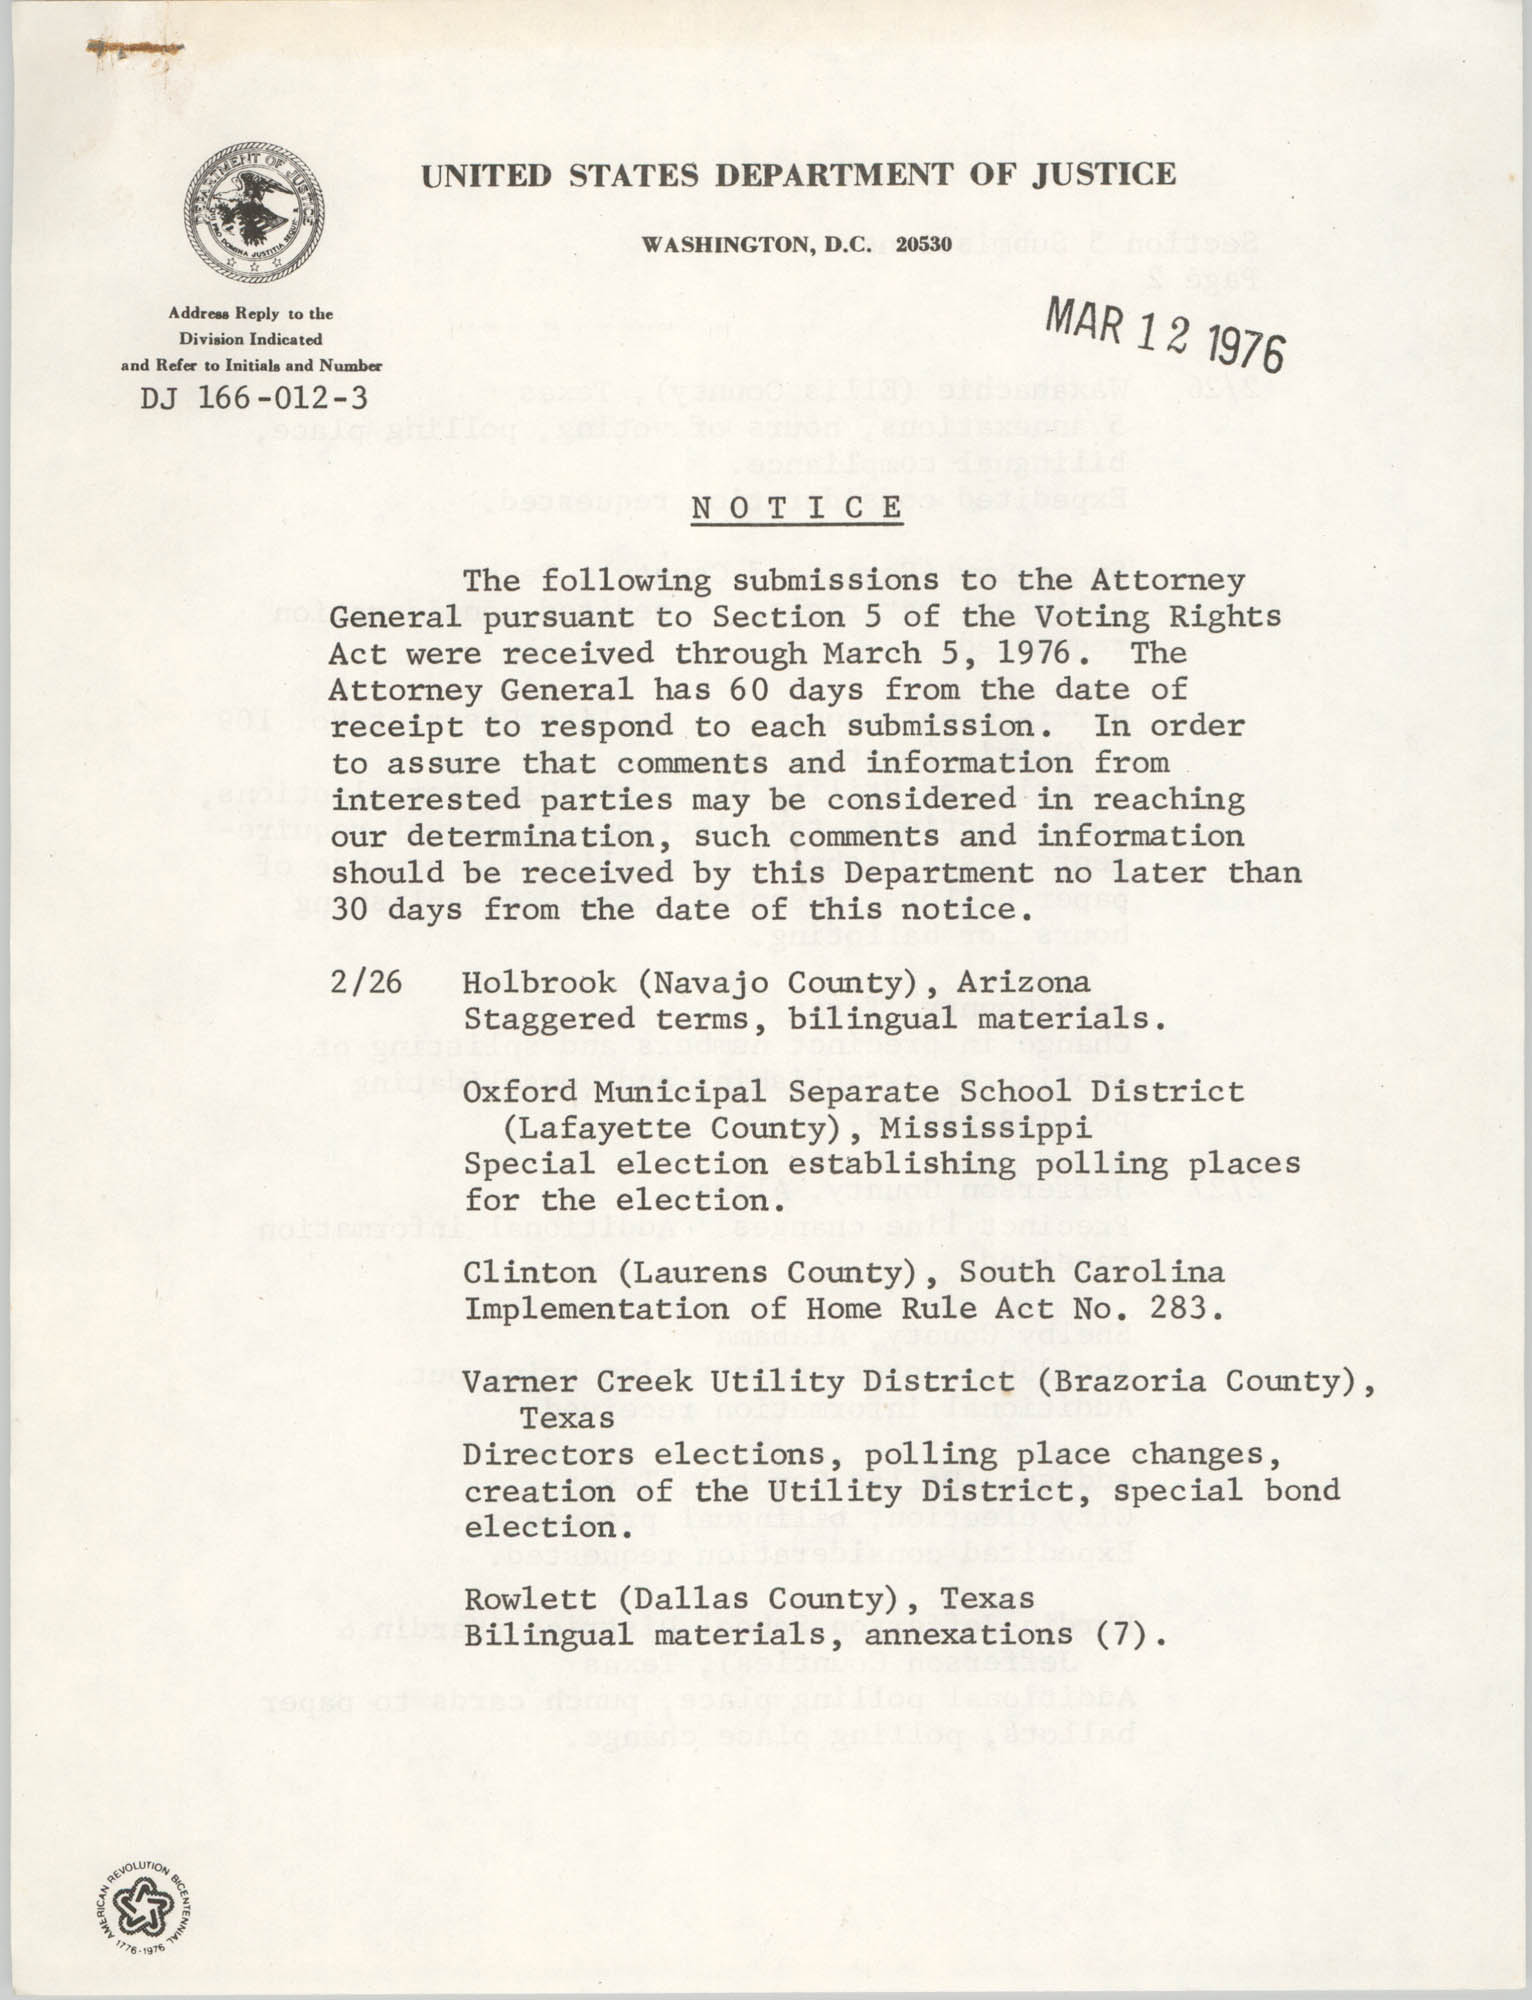 United States Department of Justice Notice, March 12, 1976, Page 1